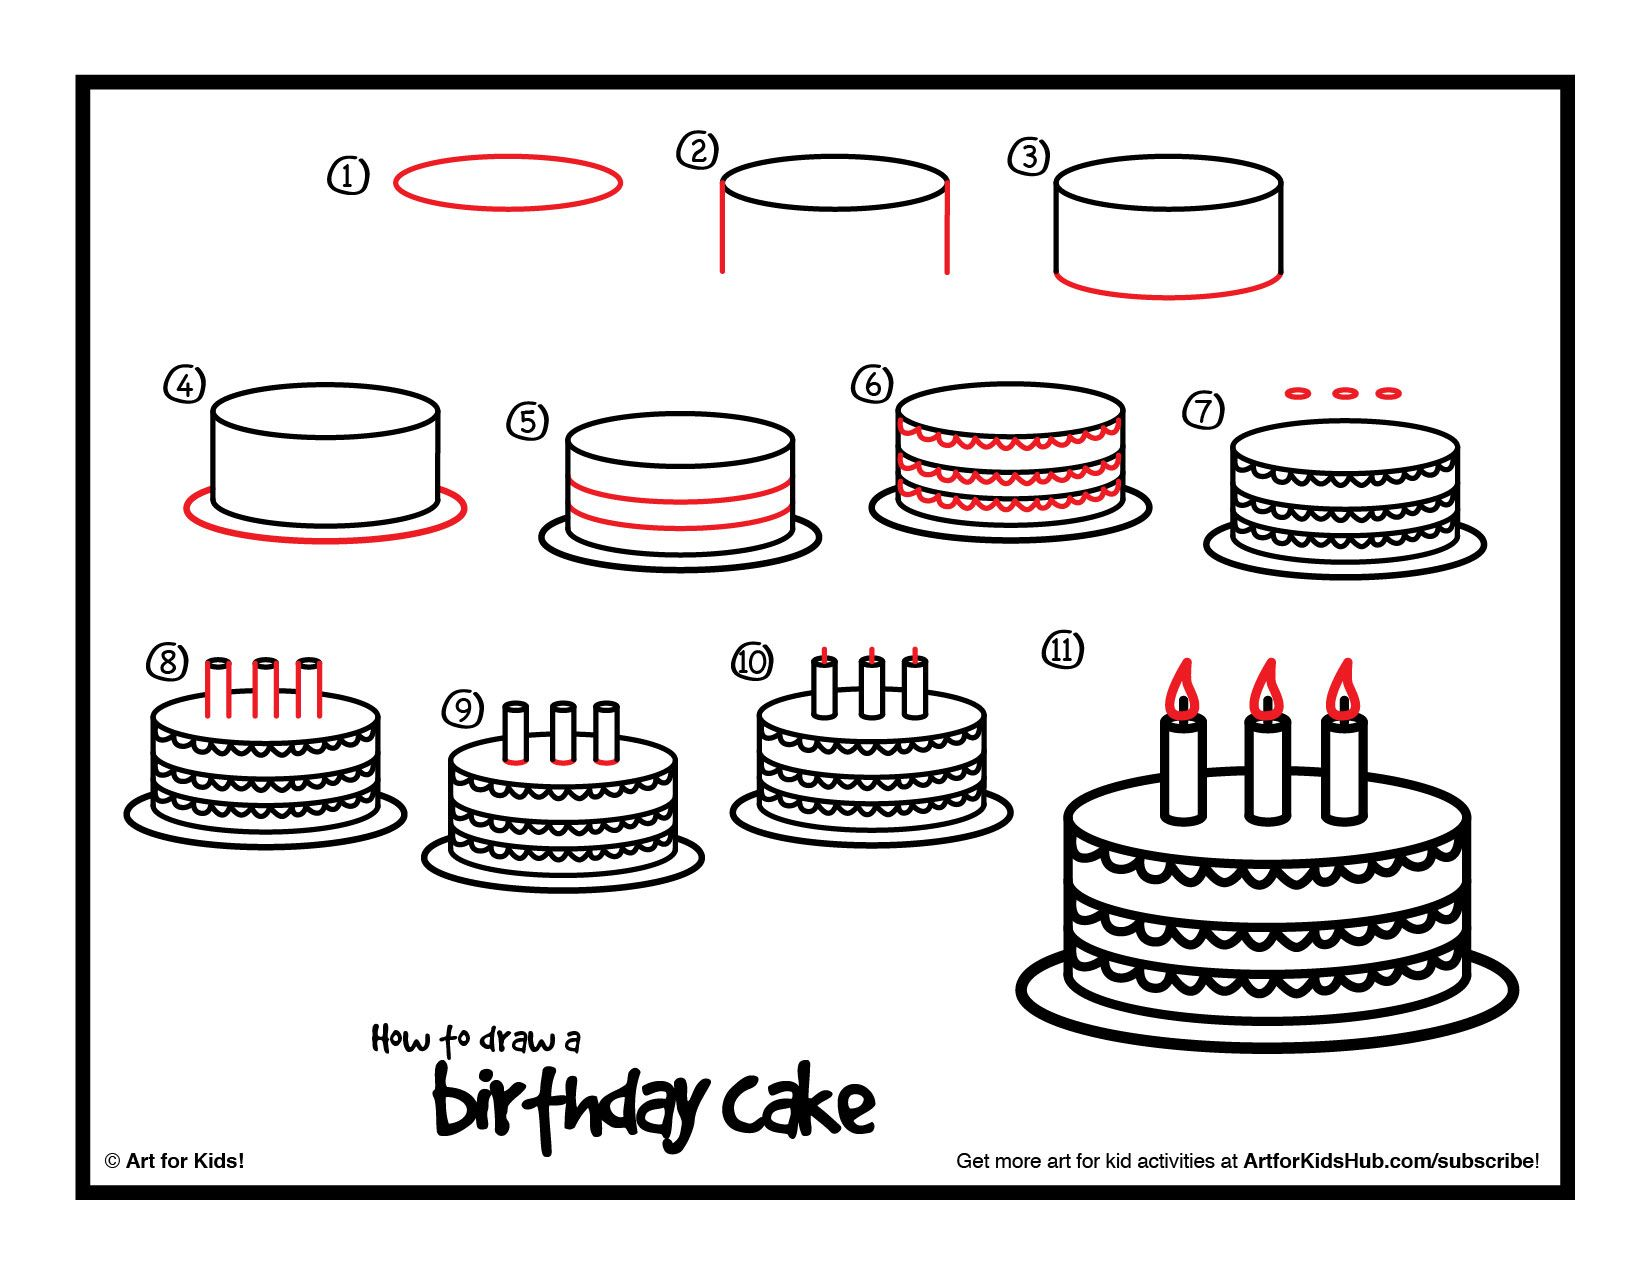 Download a printable for how to draw a birthday cake plus see step download a printable for how to draw a birthday cake plus see step by biocorpaavc Choice Image